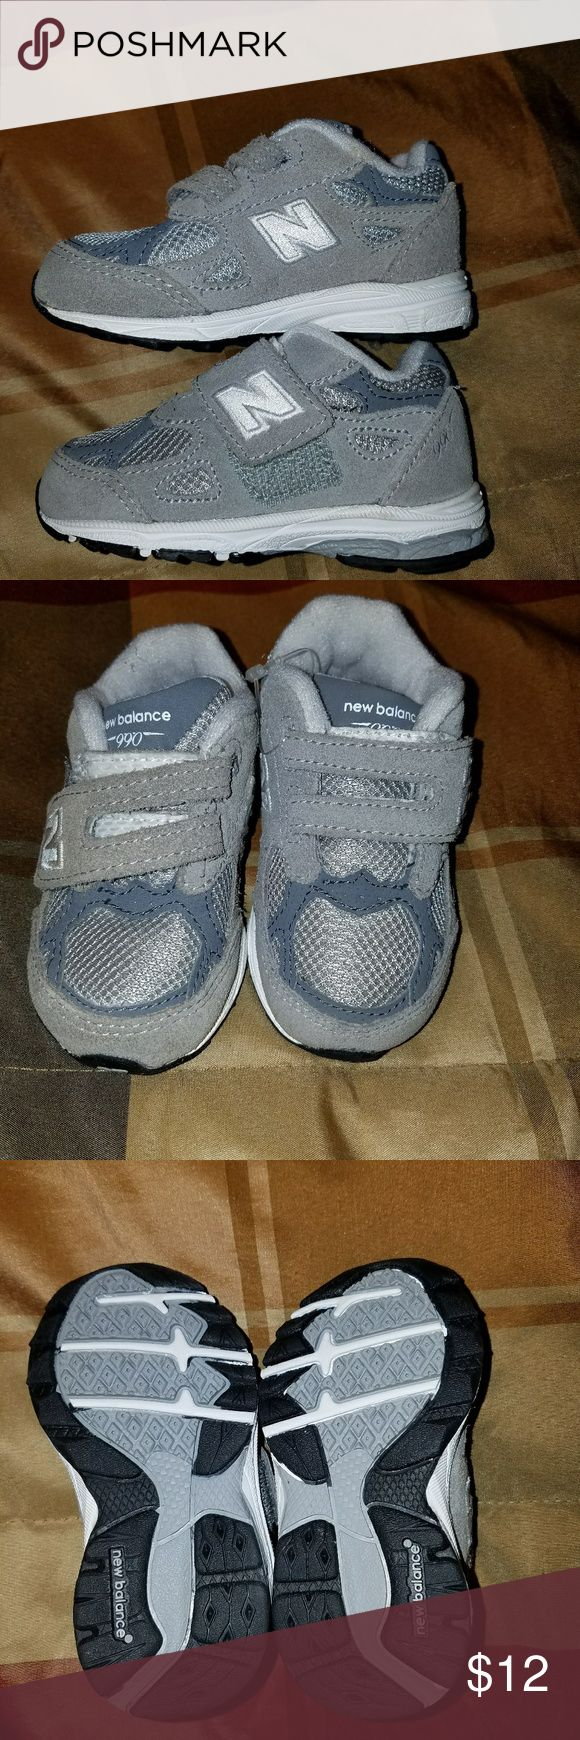 New Balance sneakers New Balance sneakers for infants. New Balance Shoes Sneakers